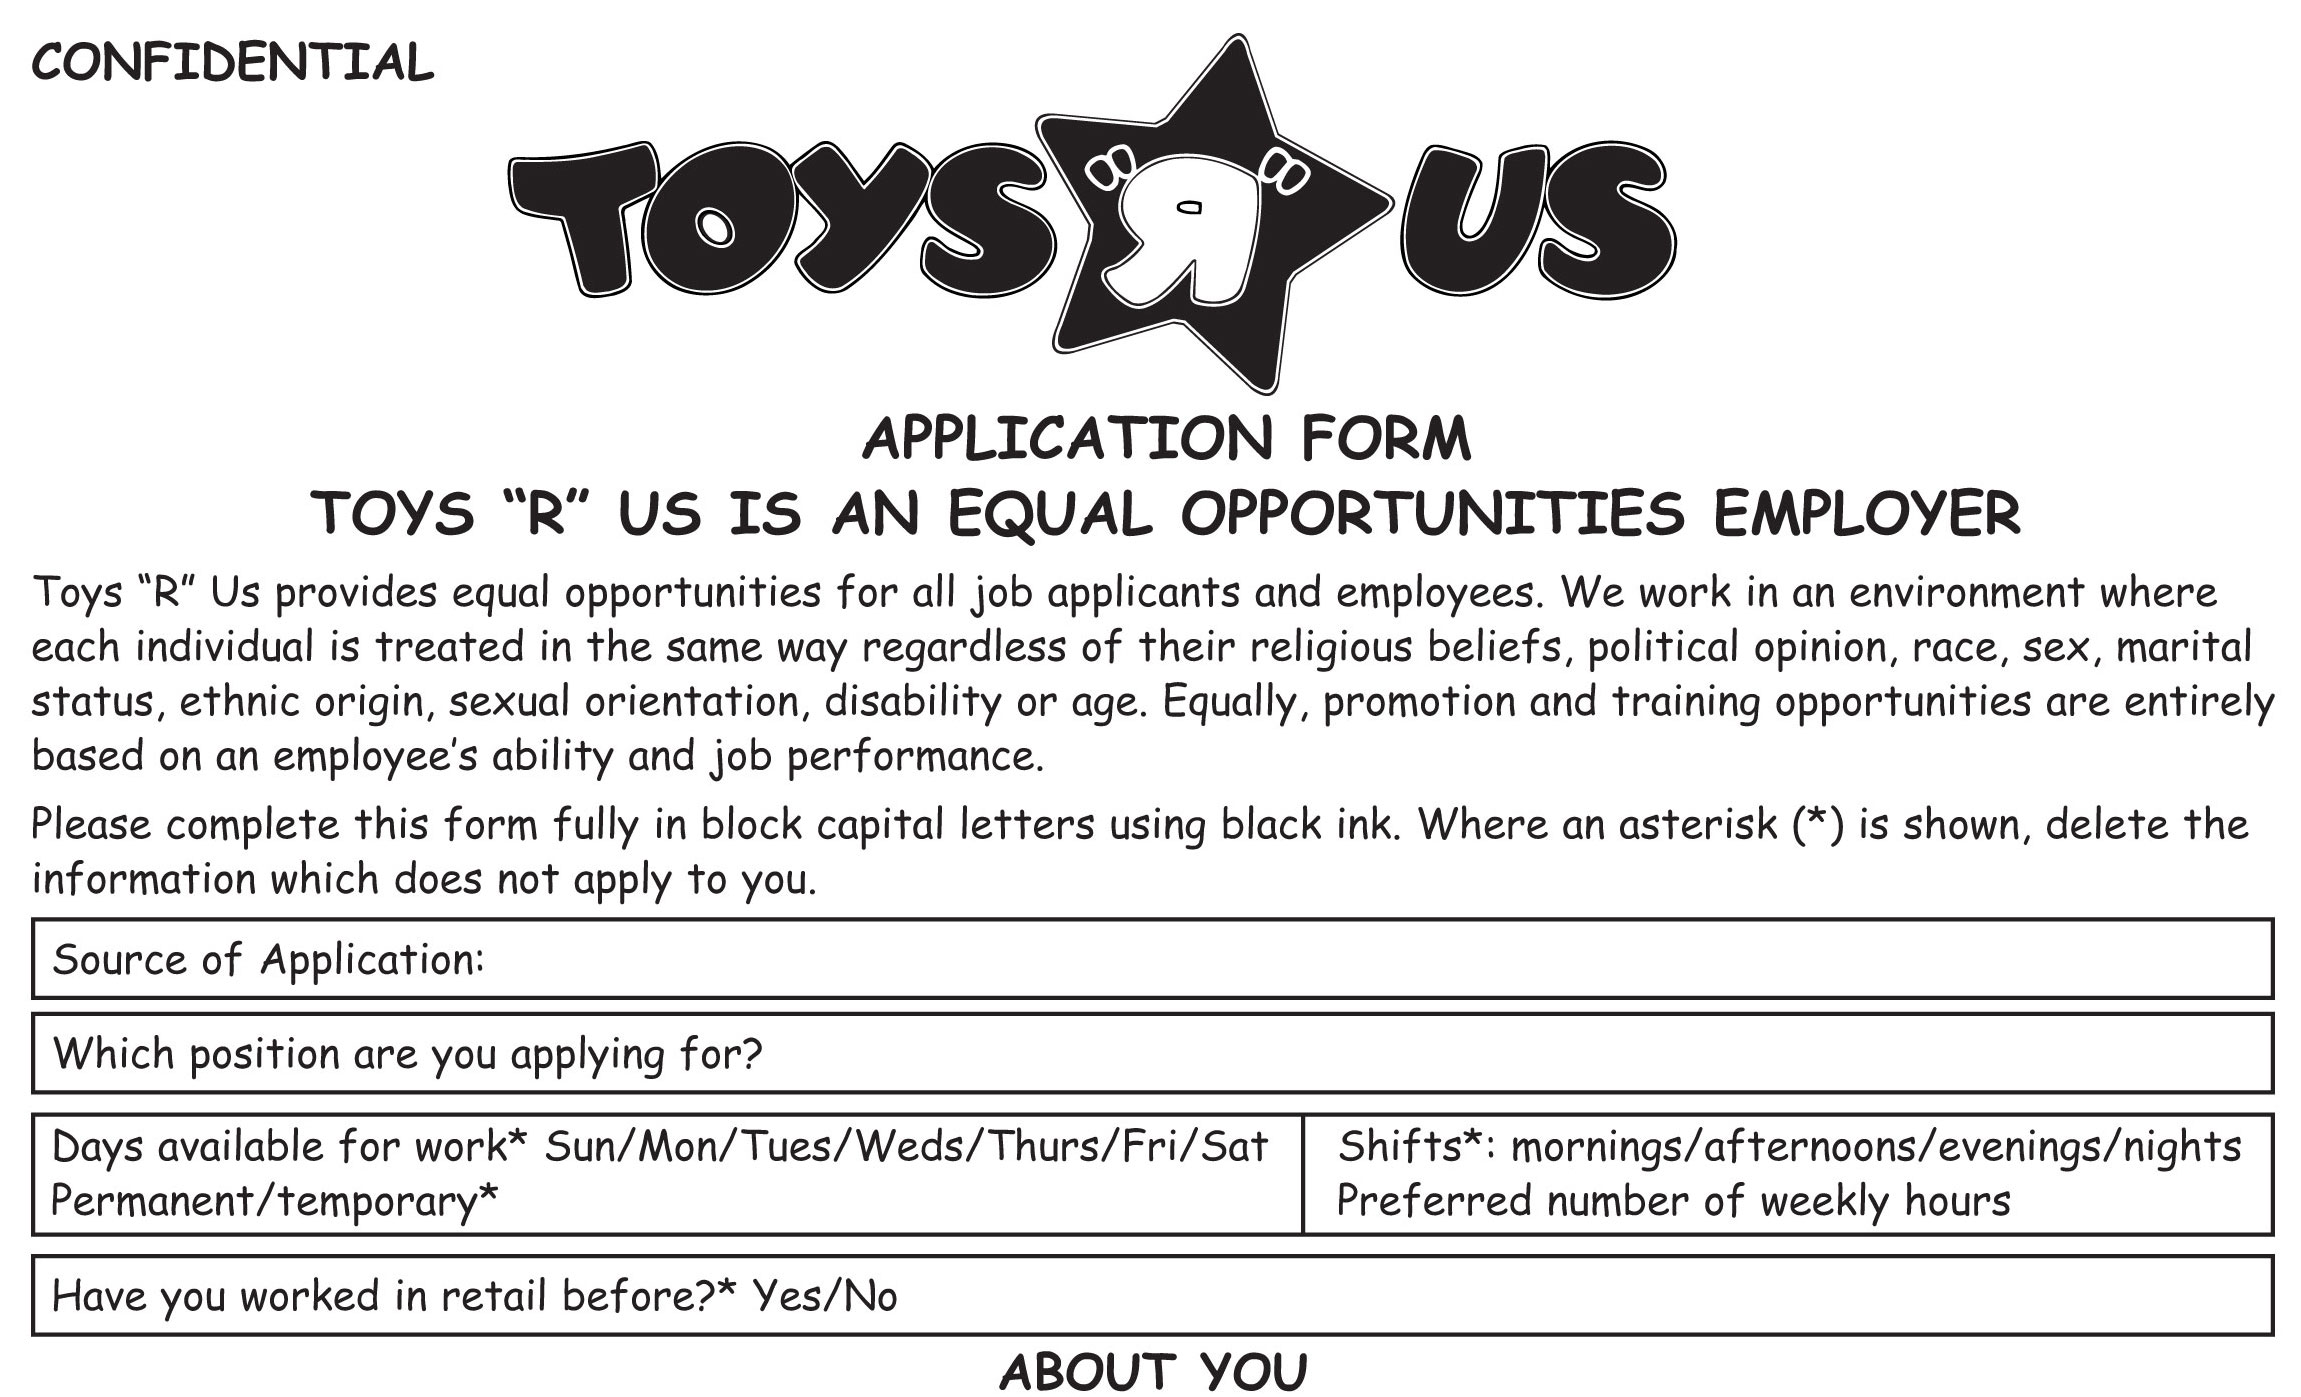 picture relating to Printable Gamestop Application referred to as Toys R Us Undertaking Program Type Printable Endeavor Software package